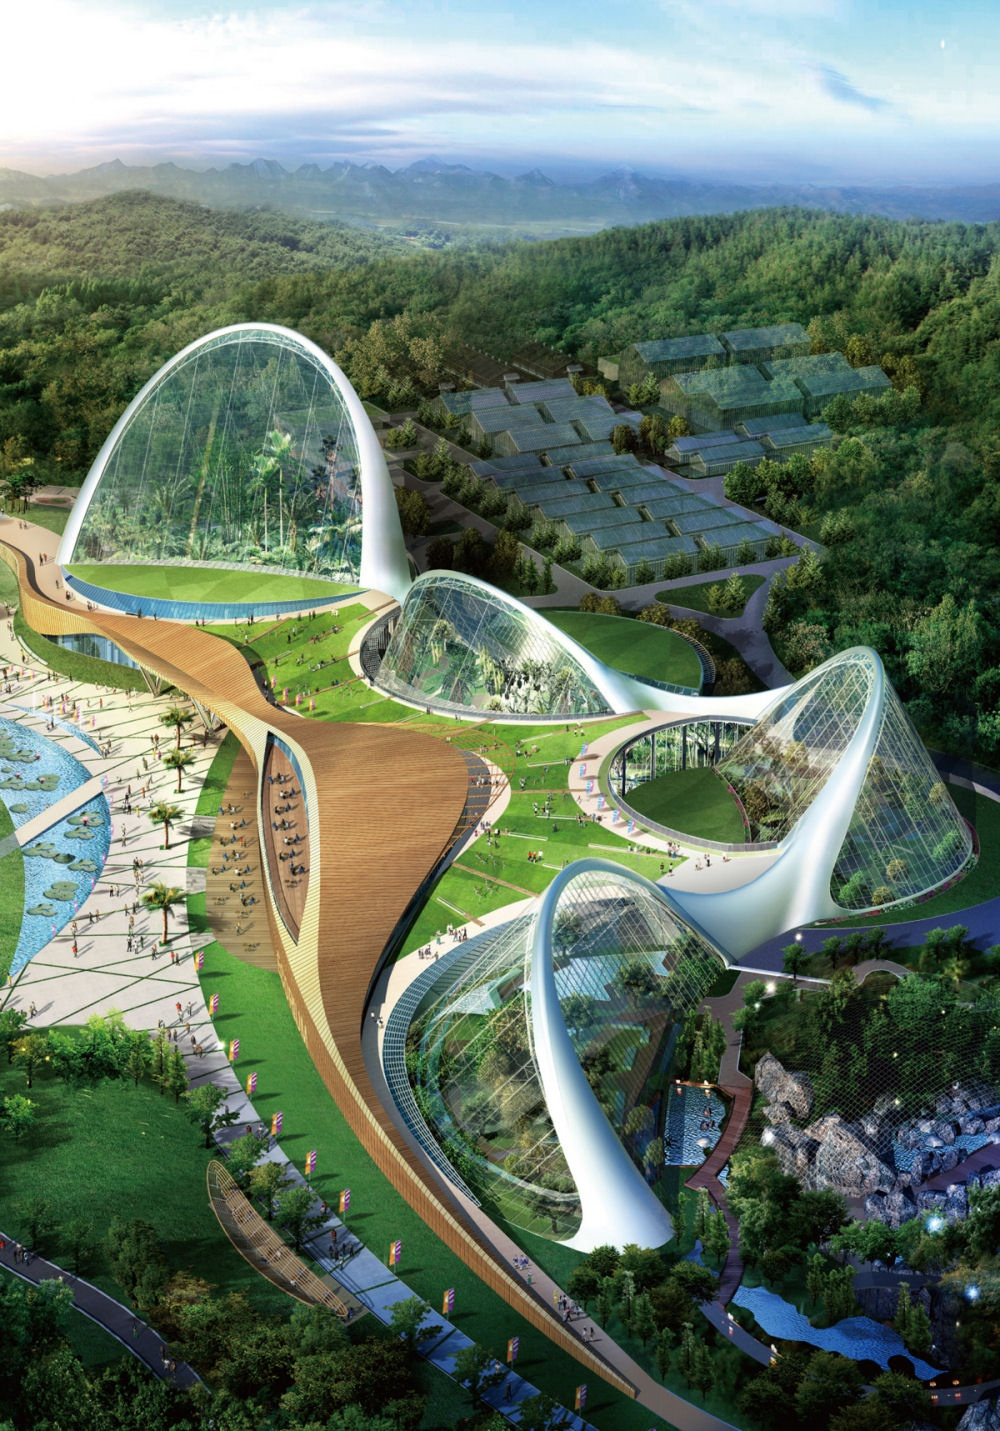 Futuristic Nature House Design: 10 Awesome Futuristic Architecture Projects You Should Know